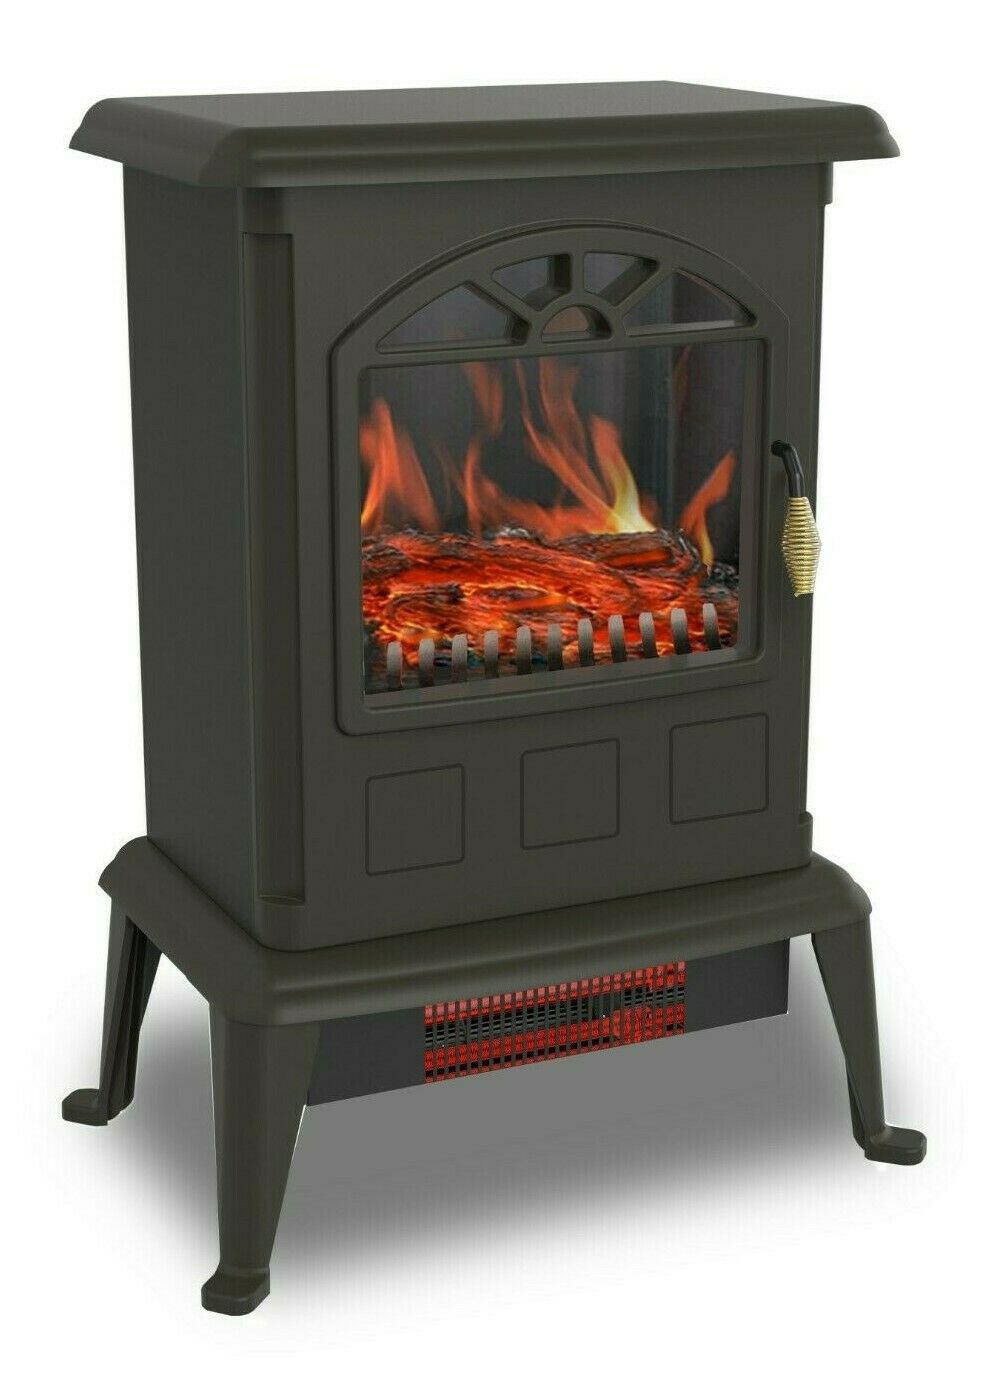 Warm Living 1500W Infrared Quartz Space Heater with Flame Effect